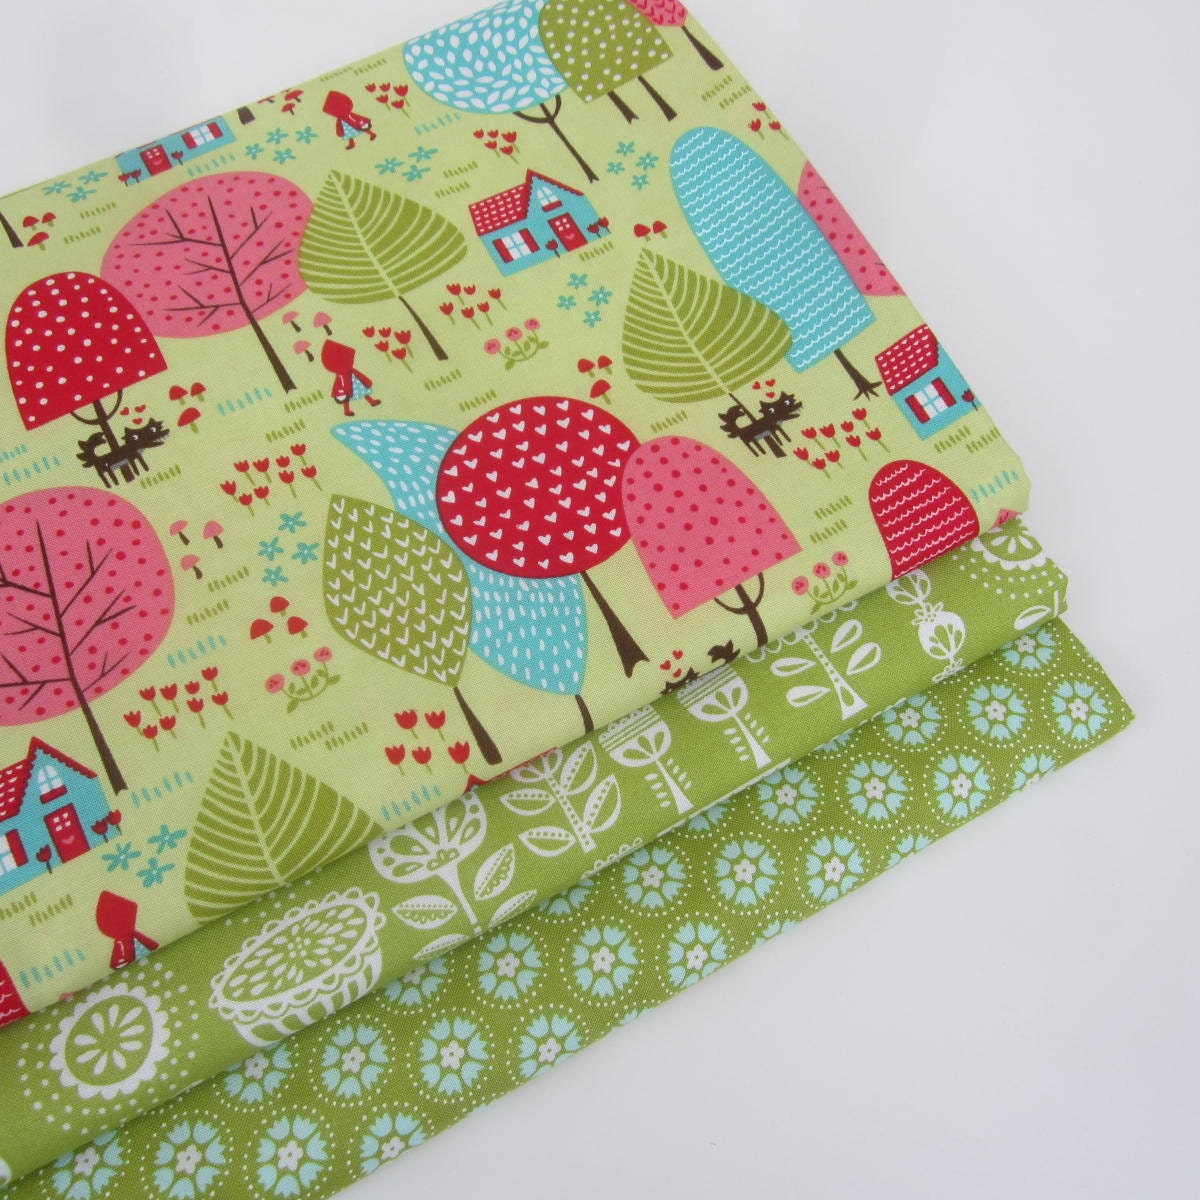 Moda lil 39 red quilting craft novelty child bright fabric for Bright childrens fabric